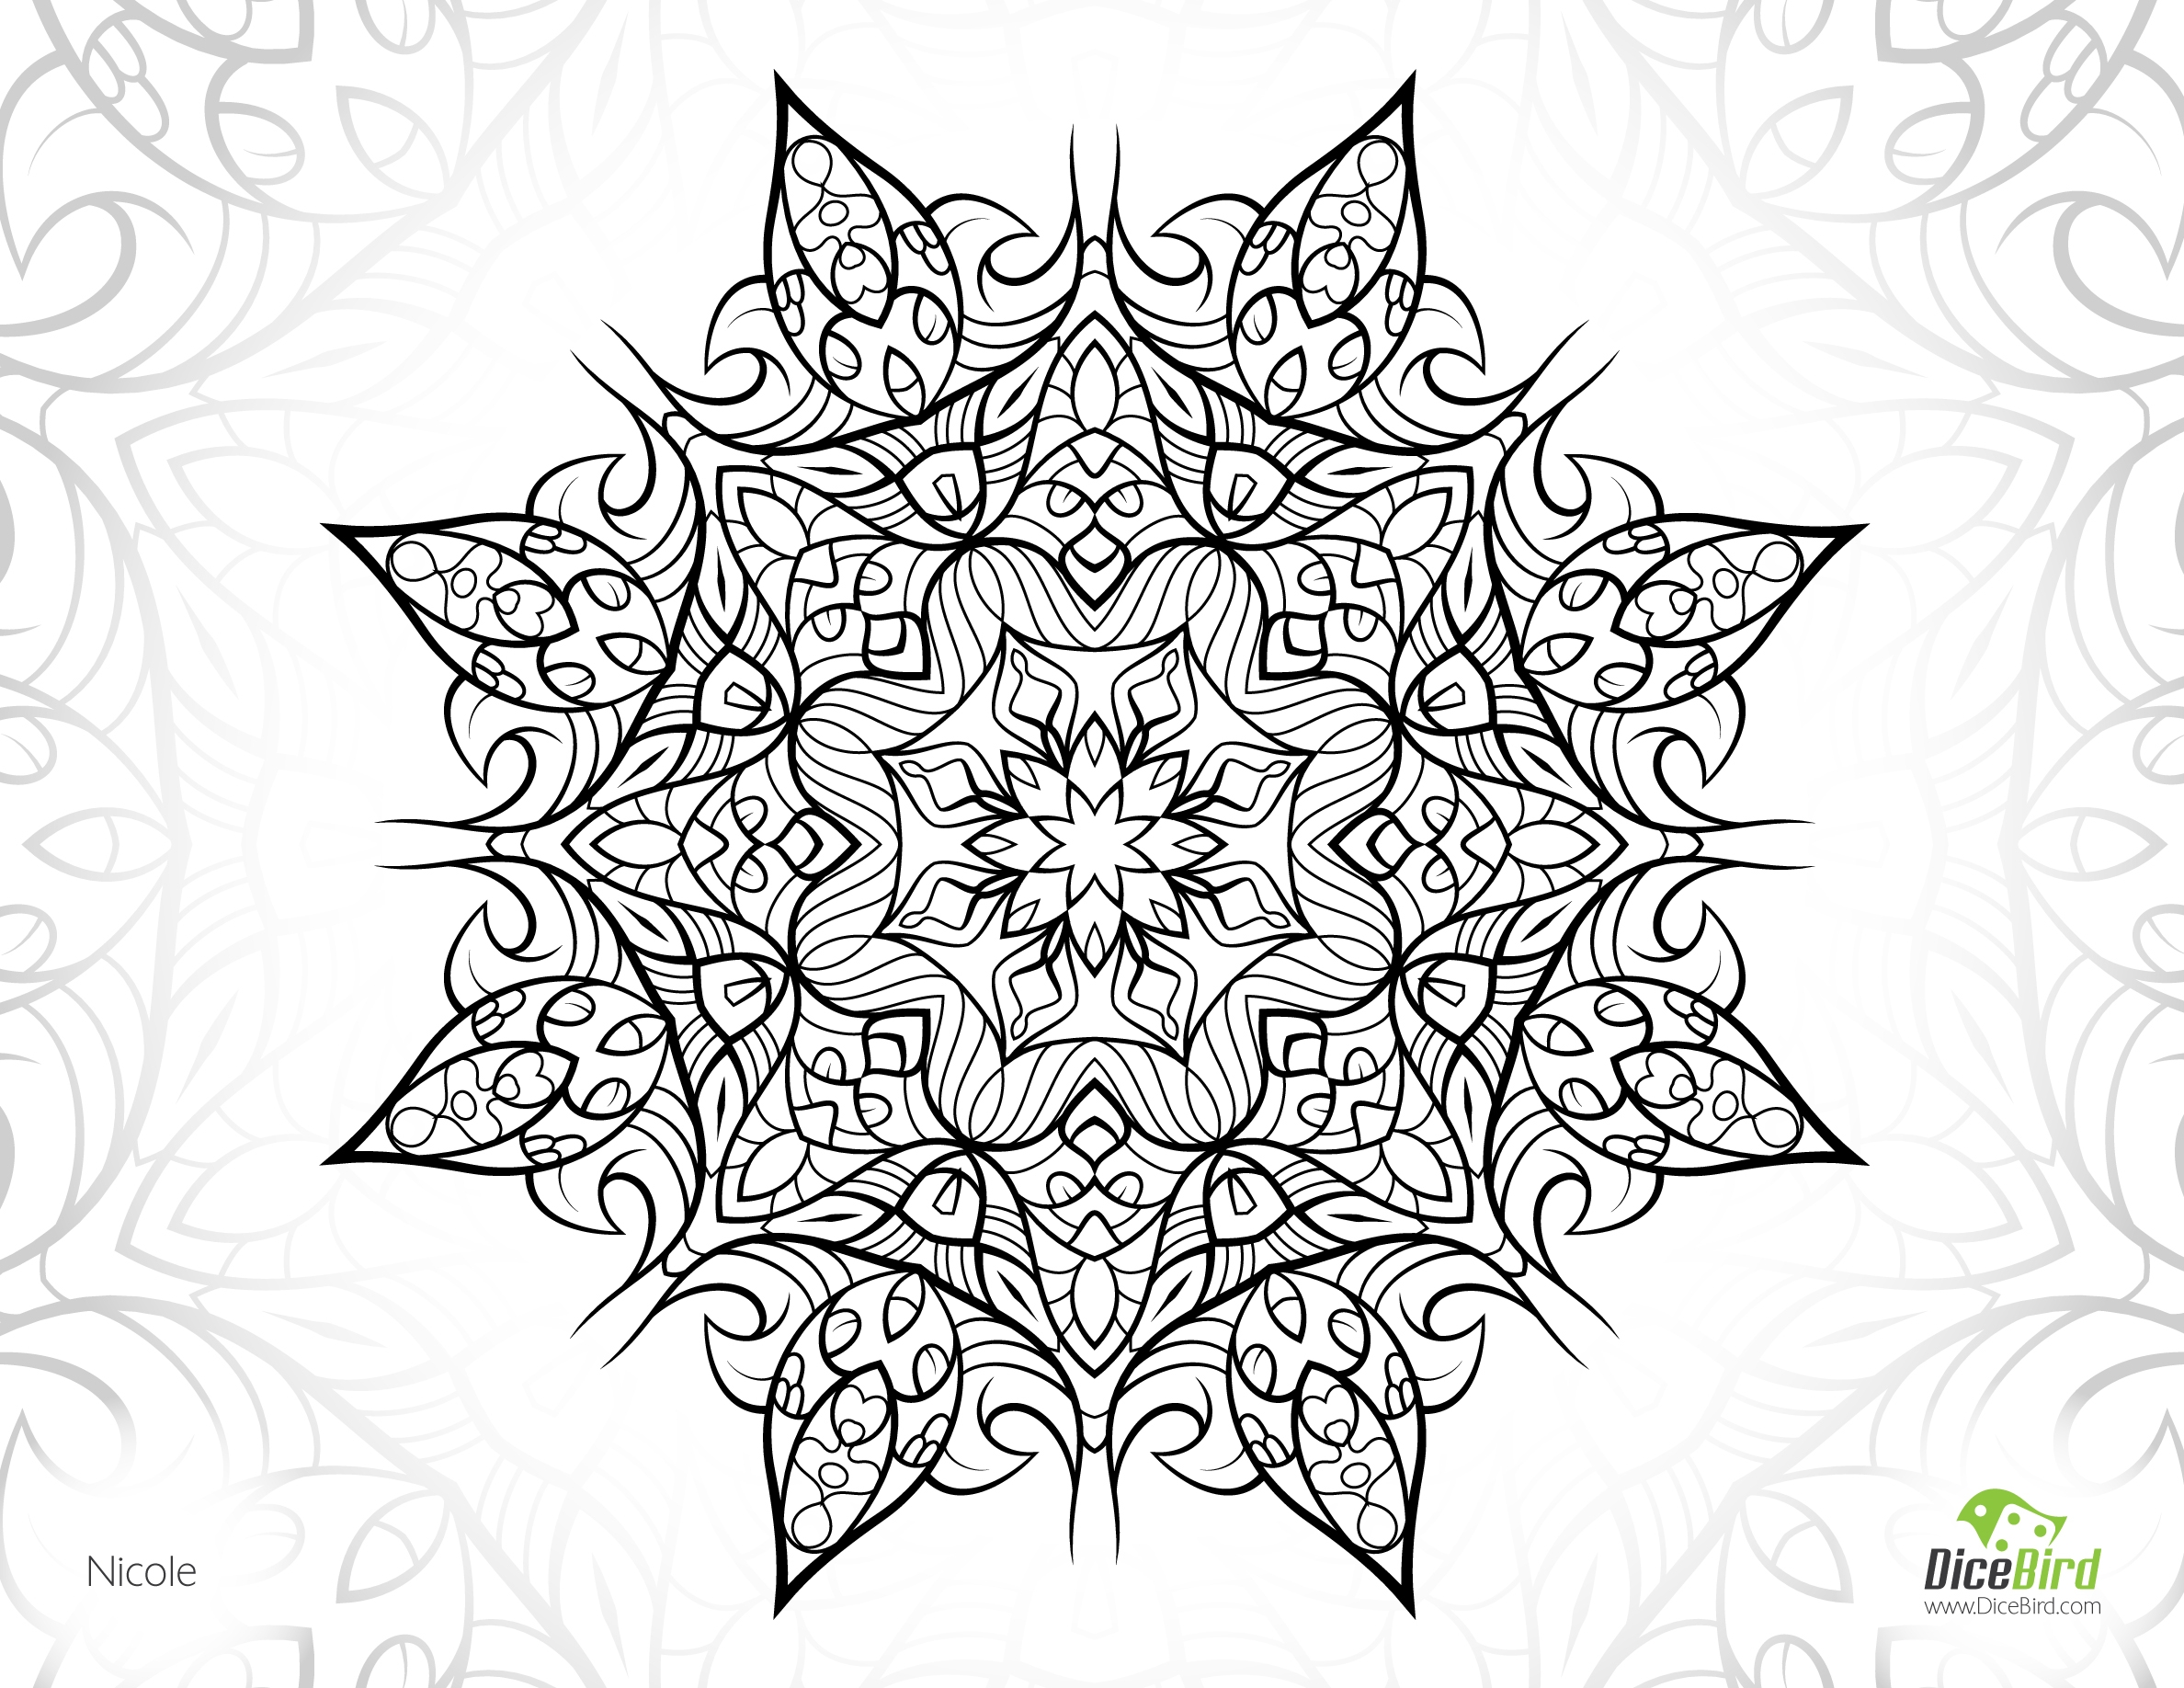 complex coloring pages - nicole flower free printable plex coloring pages